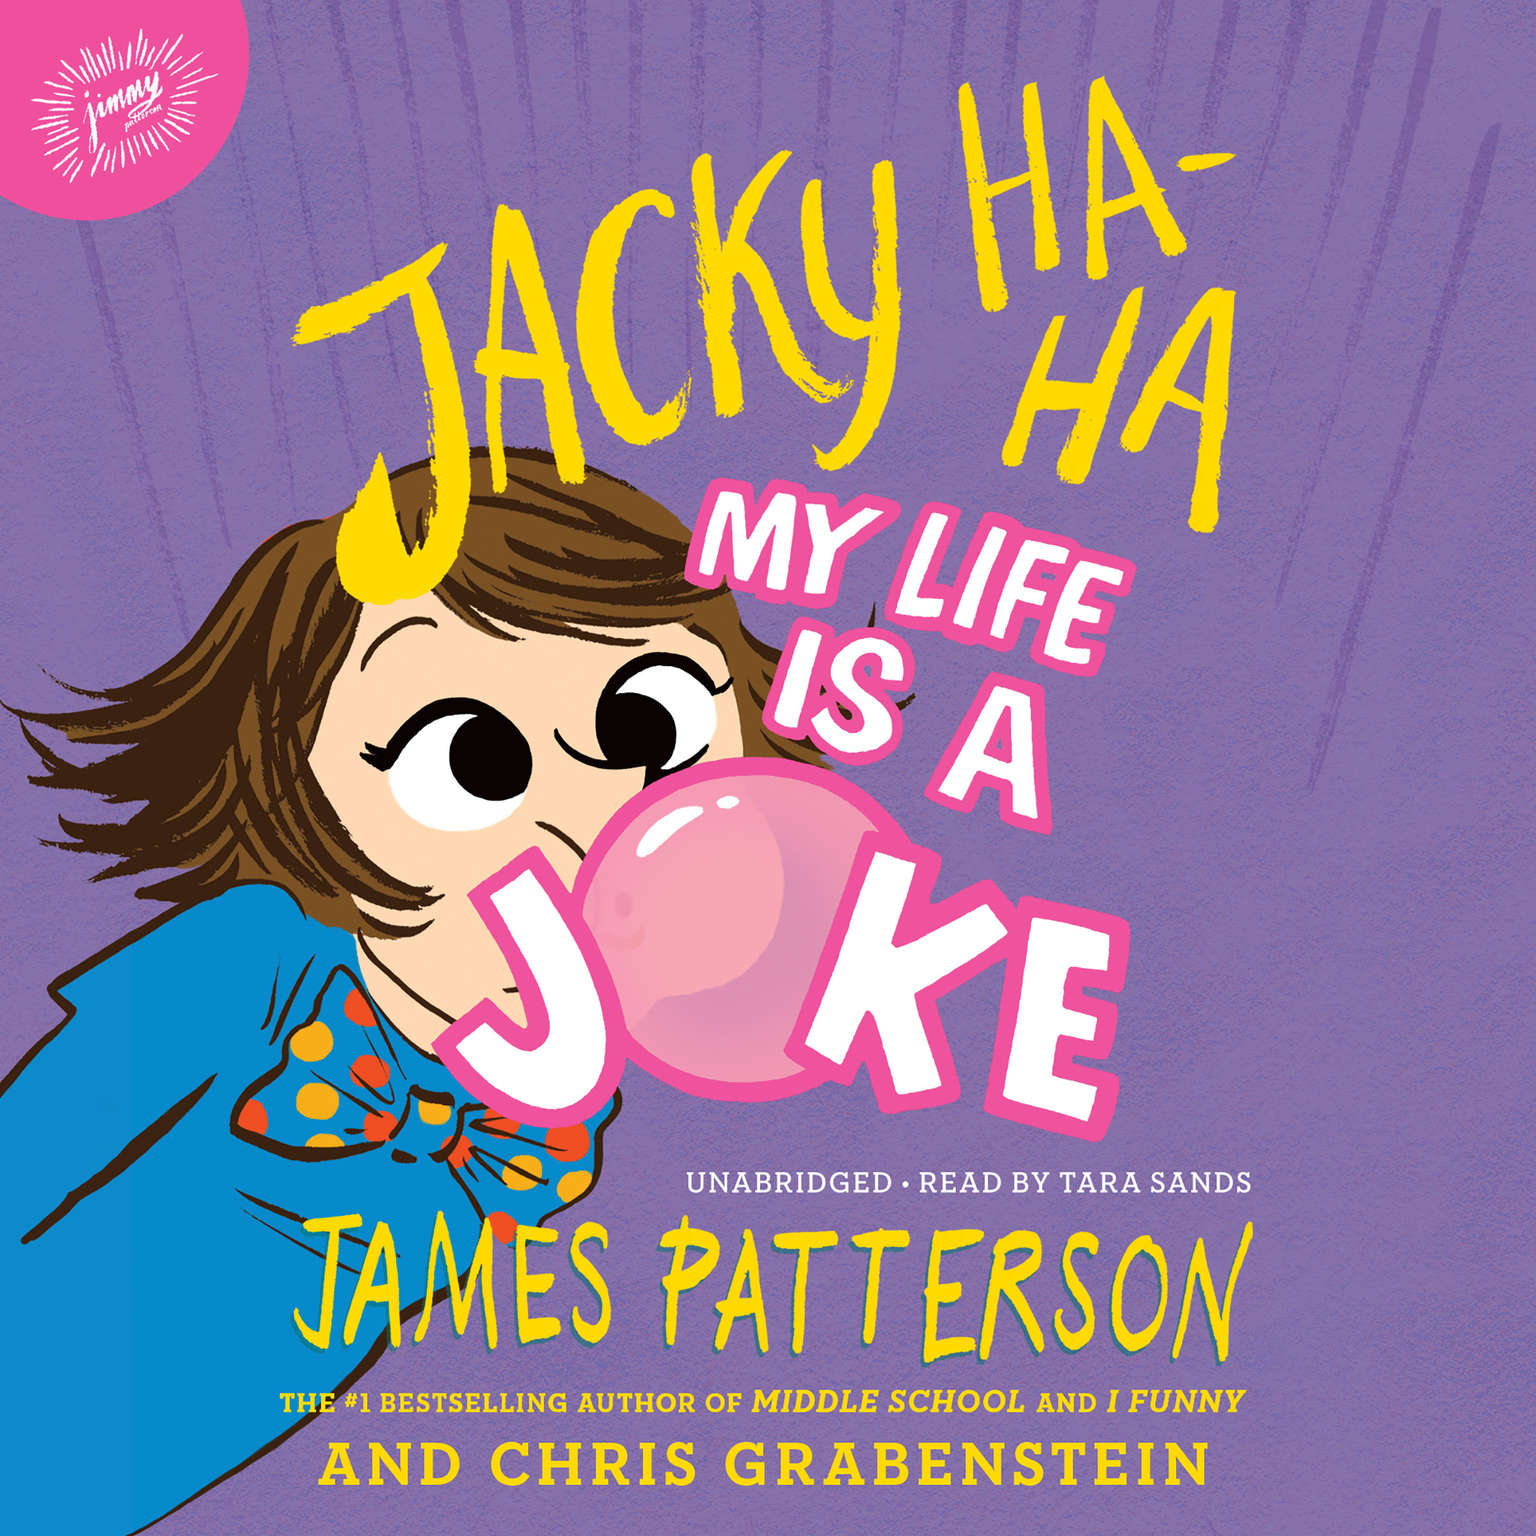 Printable Jacky Ha-Ha: My Life Is a Joke Audiobook Cover Art